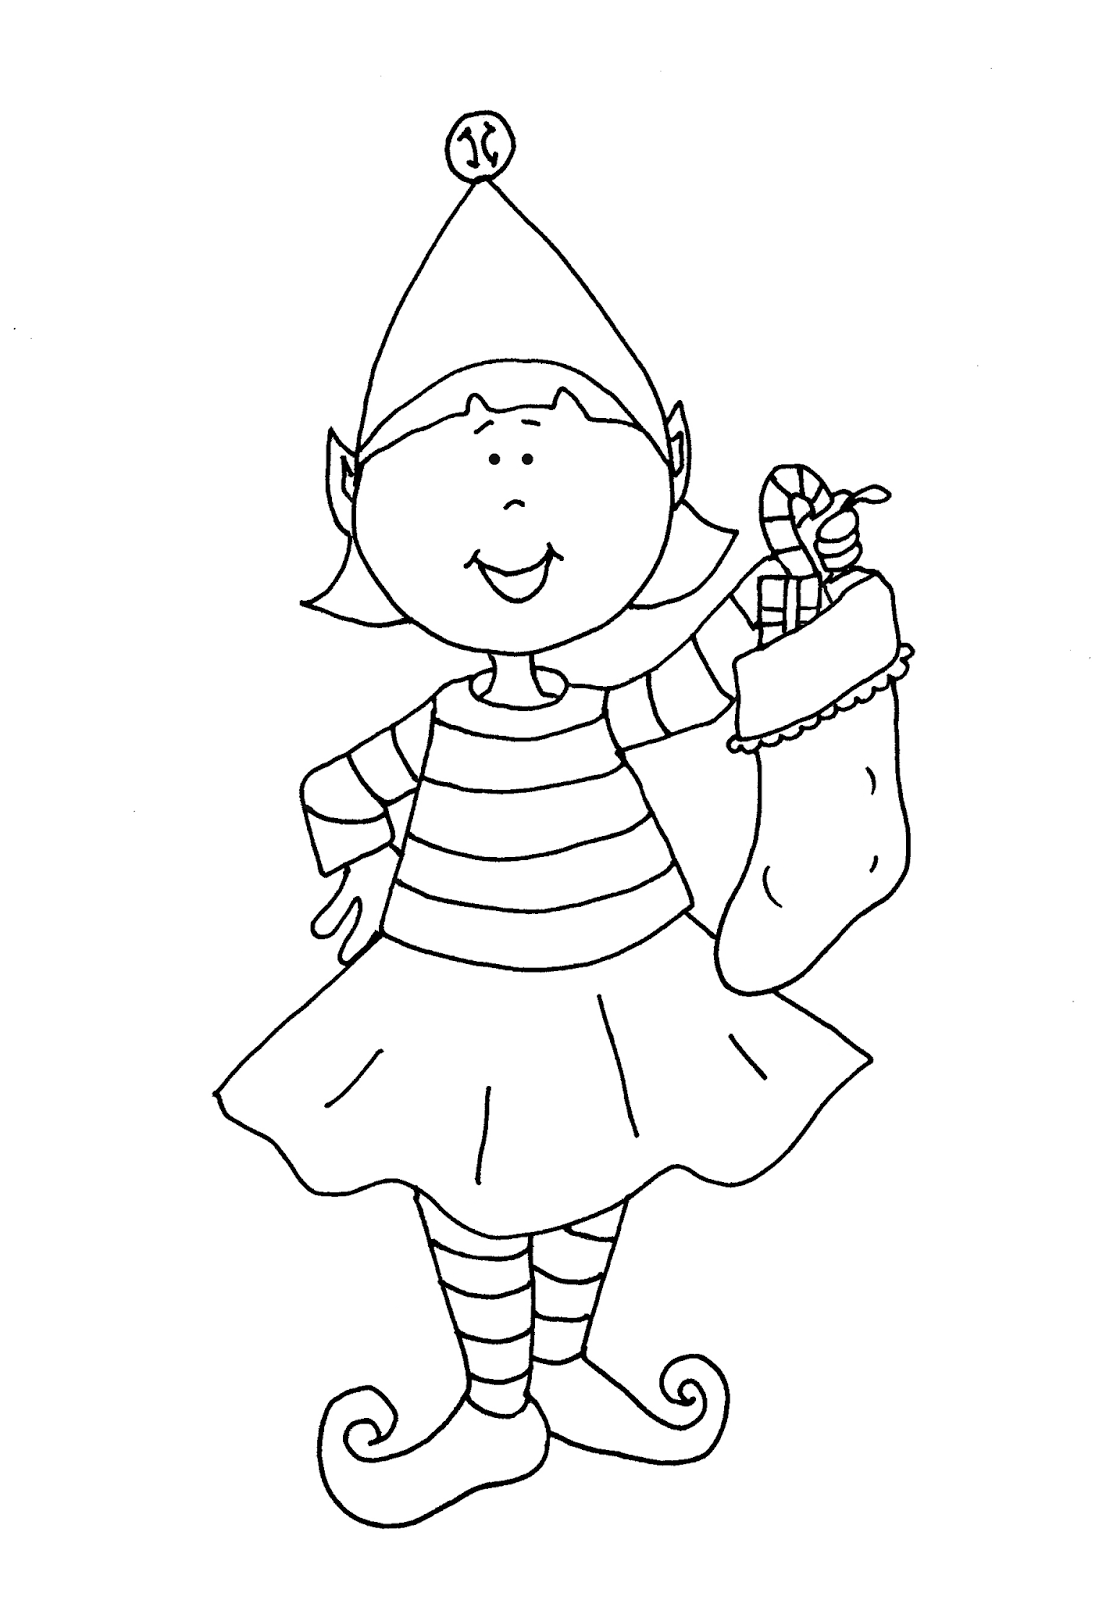 elf on the shelf printable coloring pages coloring home